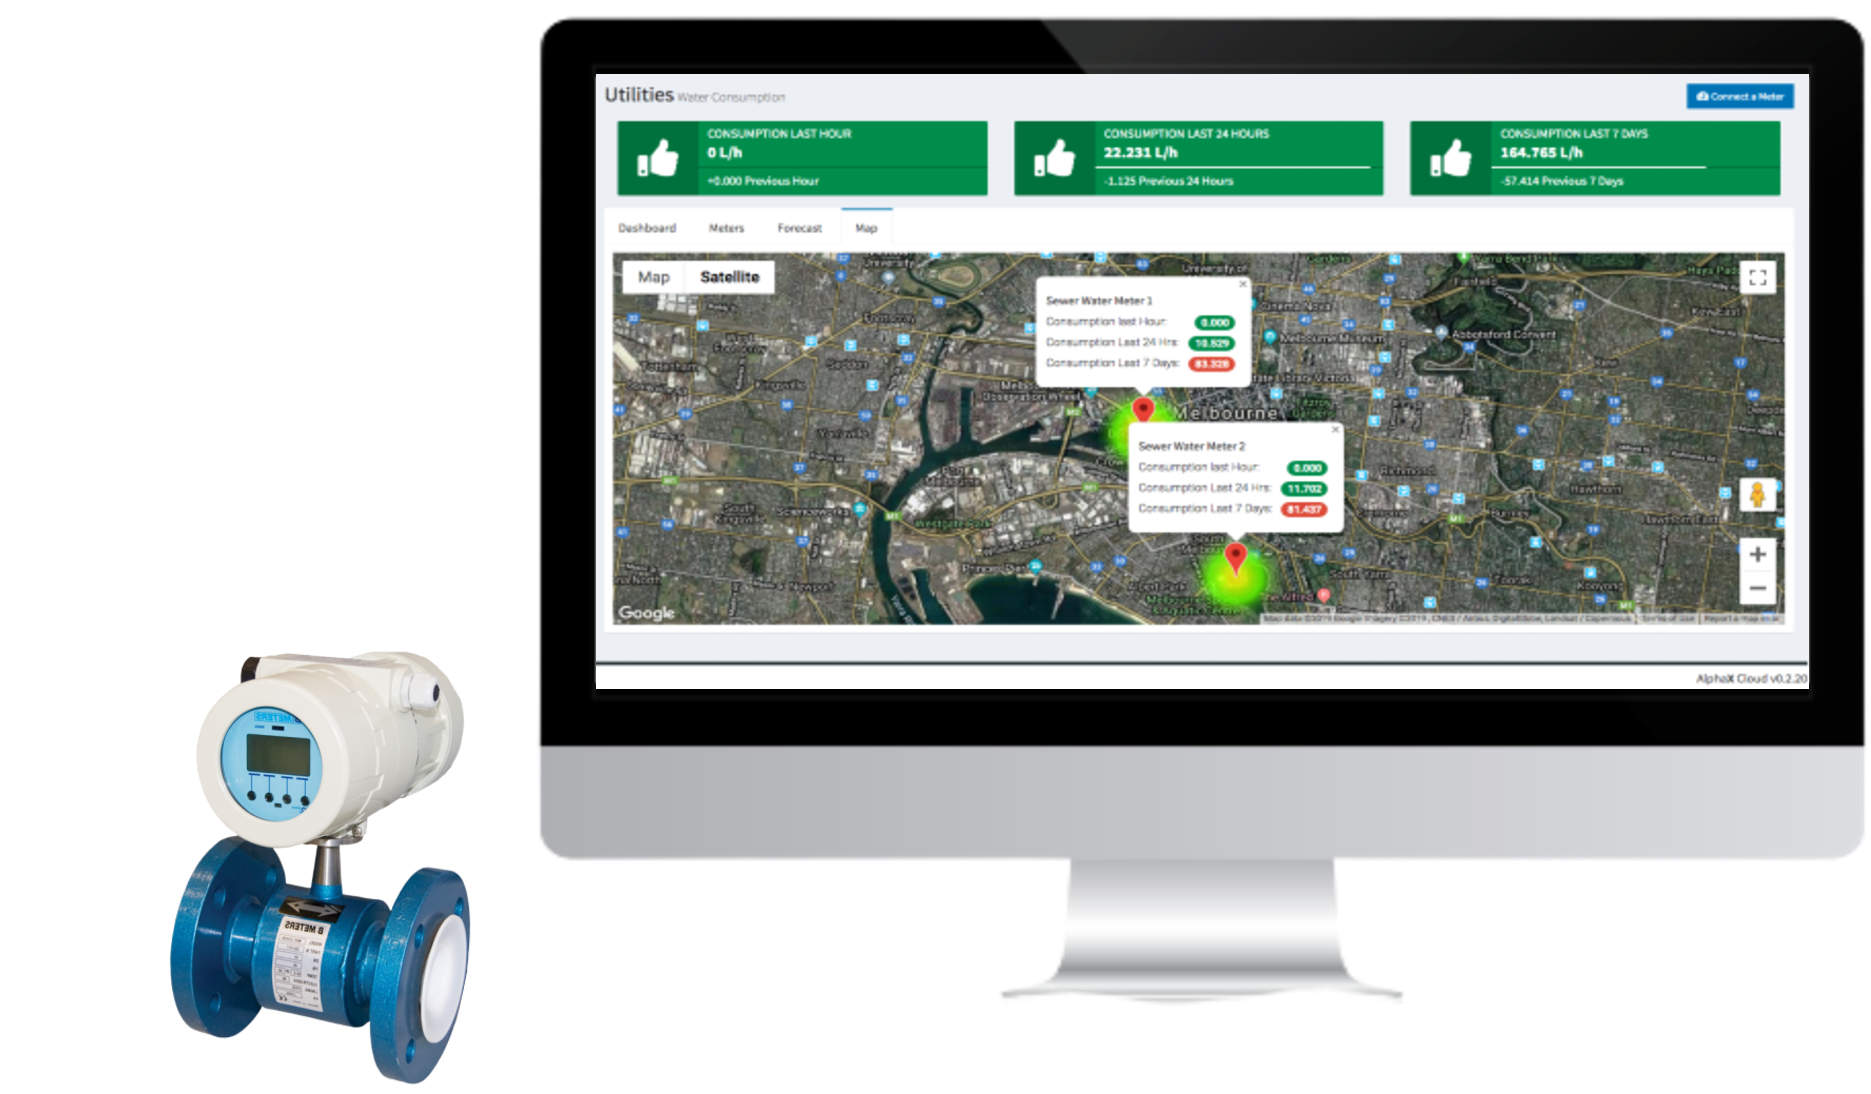 Utility Management System provides you with the live feed and useful insights.